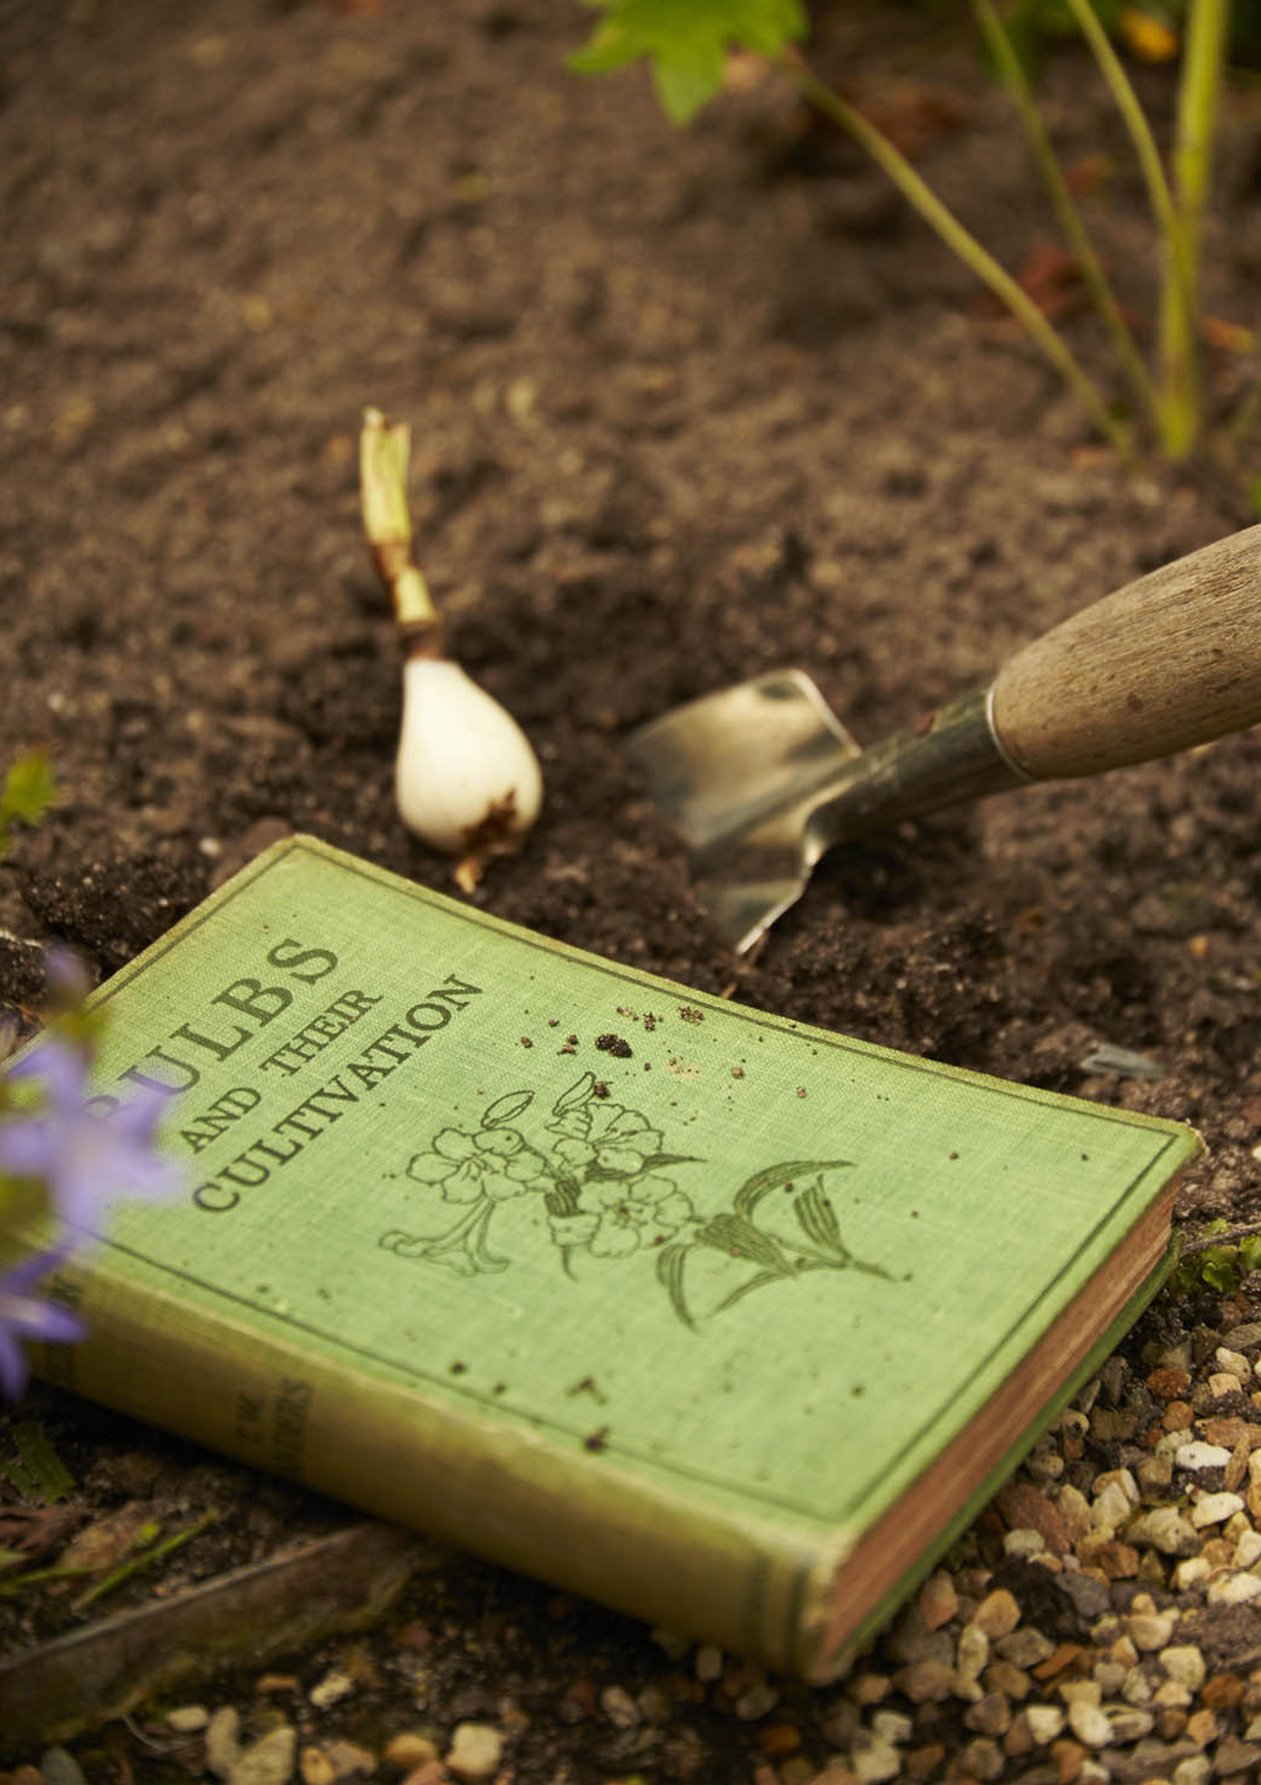 A green gardening book likes in the soil next to a trowel